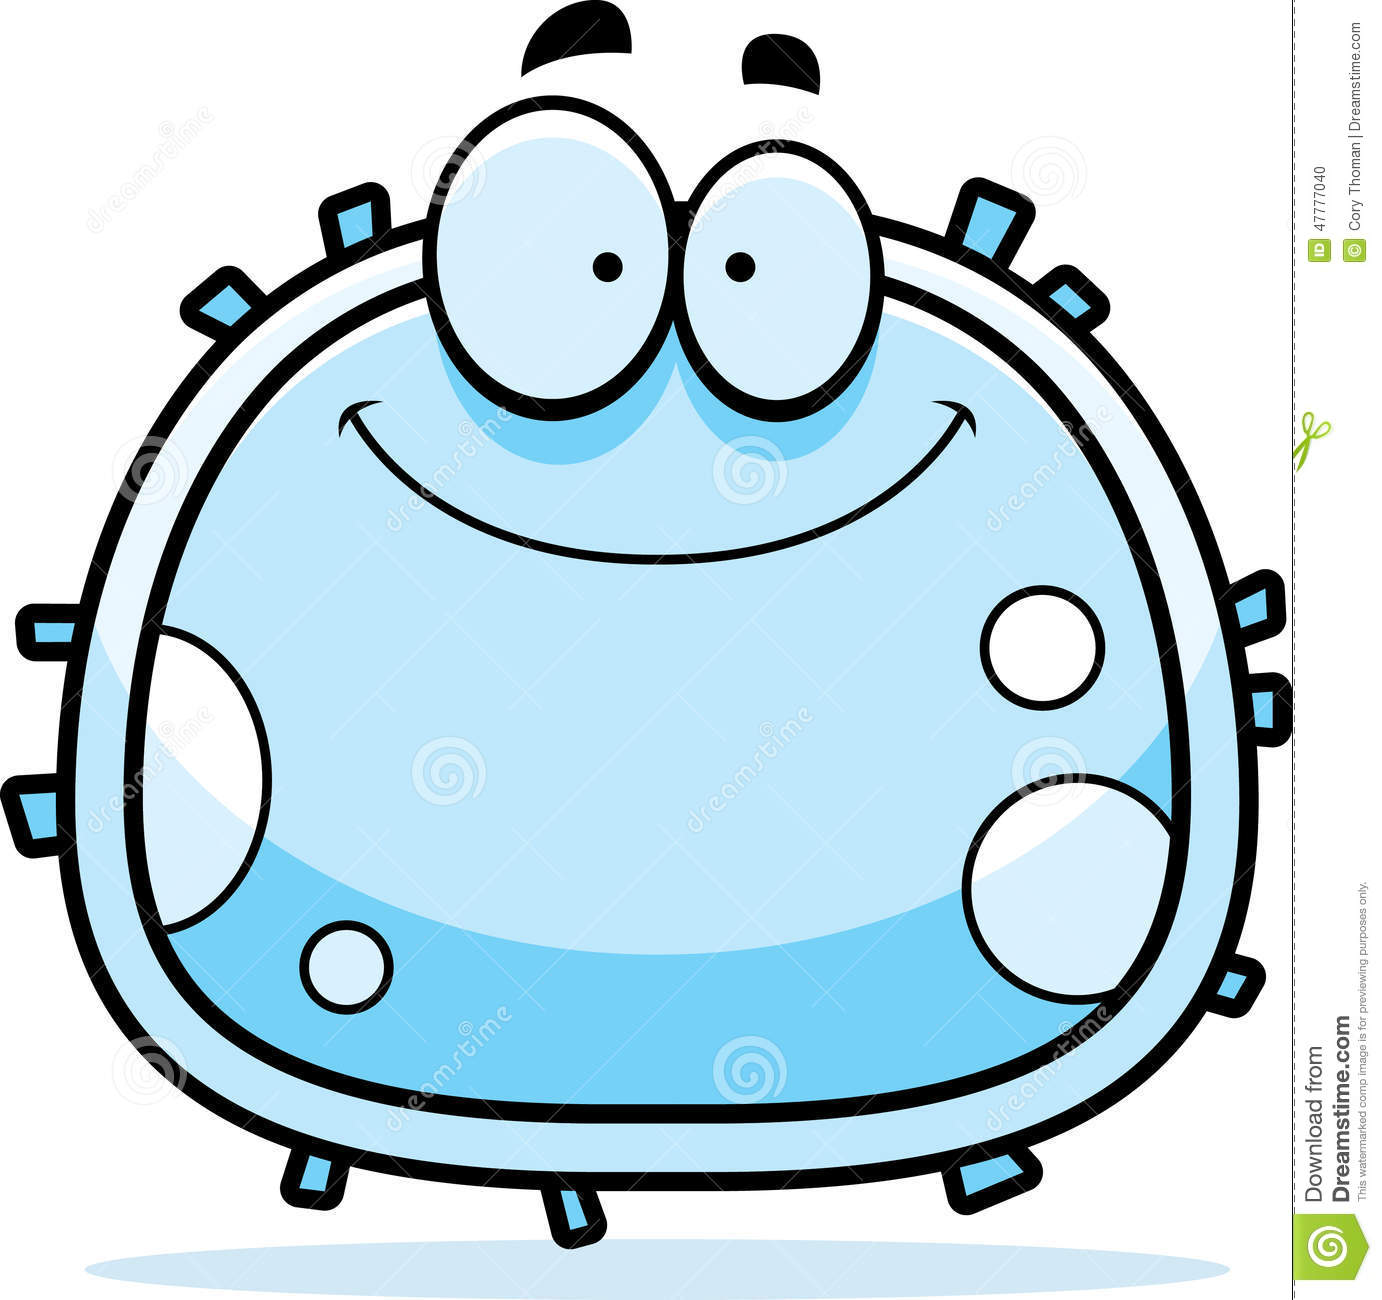 Cell Clipart & Cell Clip Art Images.